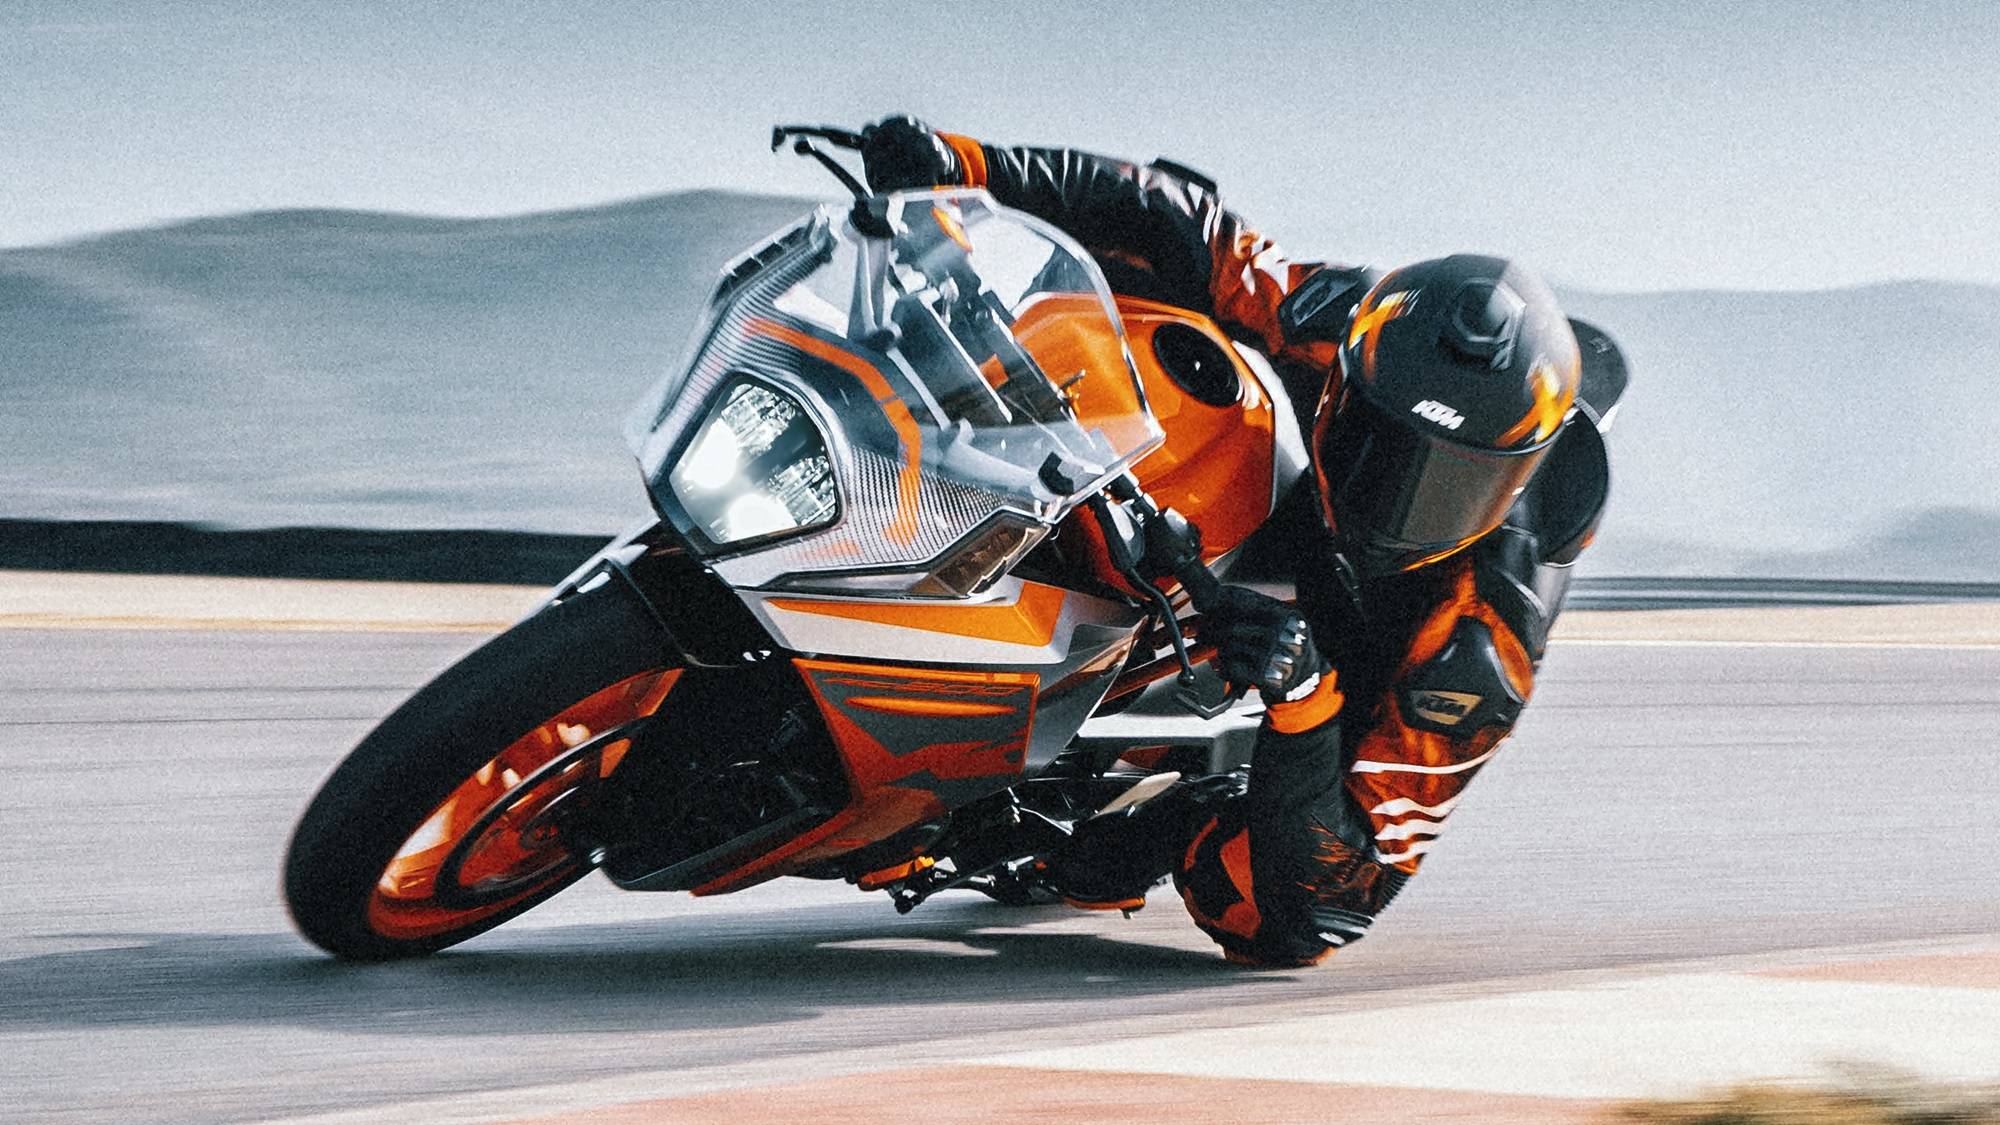 KTM RC 200 launched in India